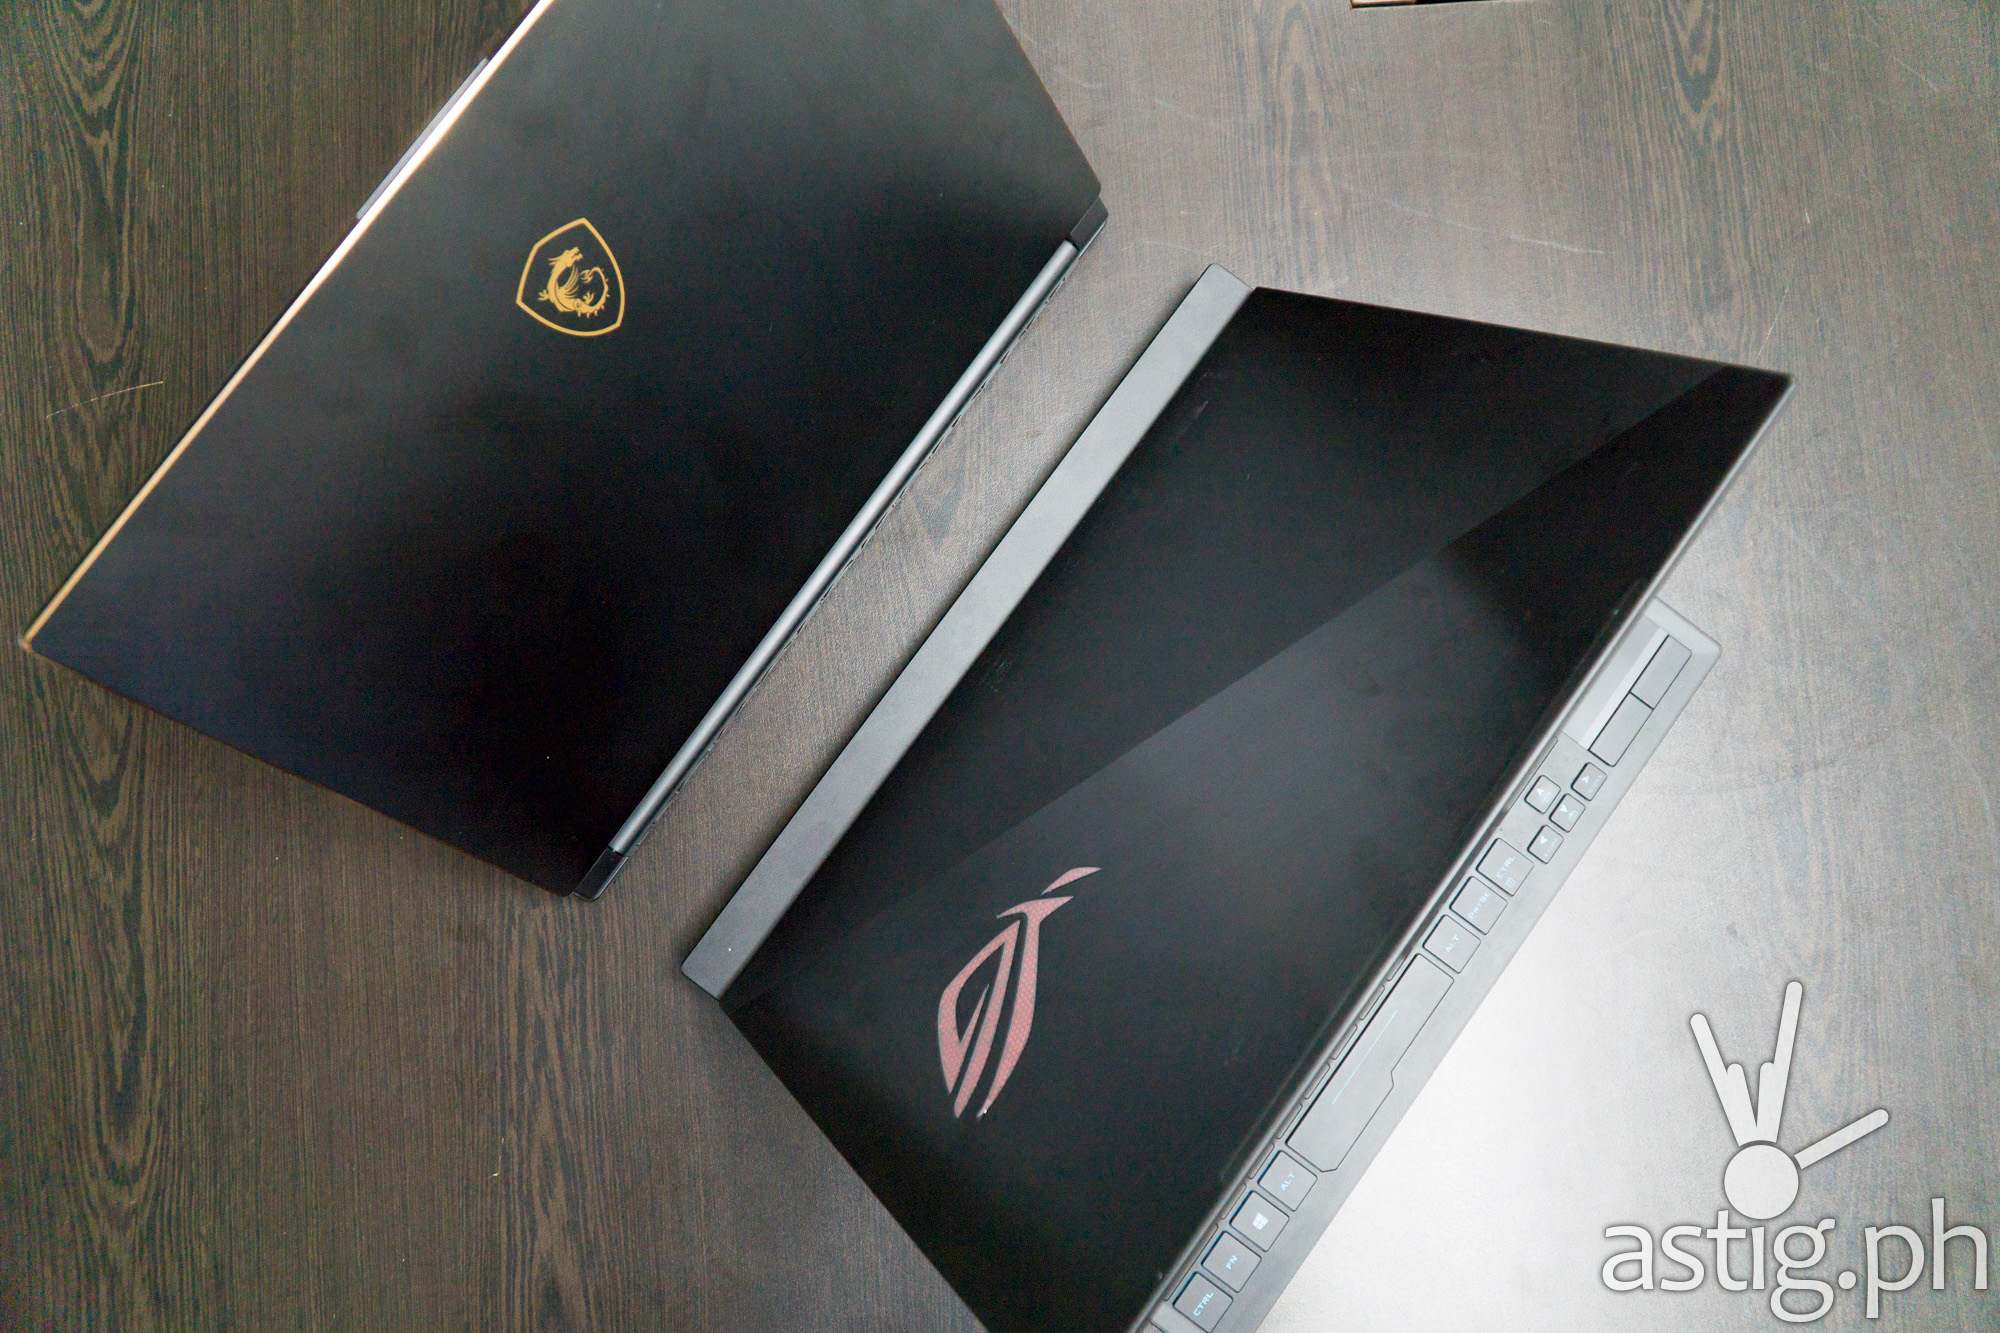 ROG Zephyrus S GX531 vs MSI GS65 Stealth Thin: Battle for